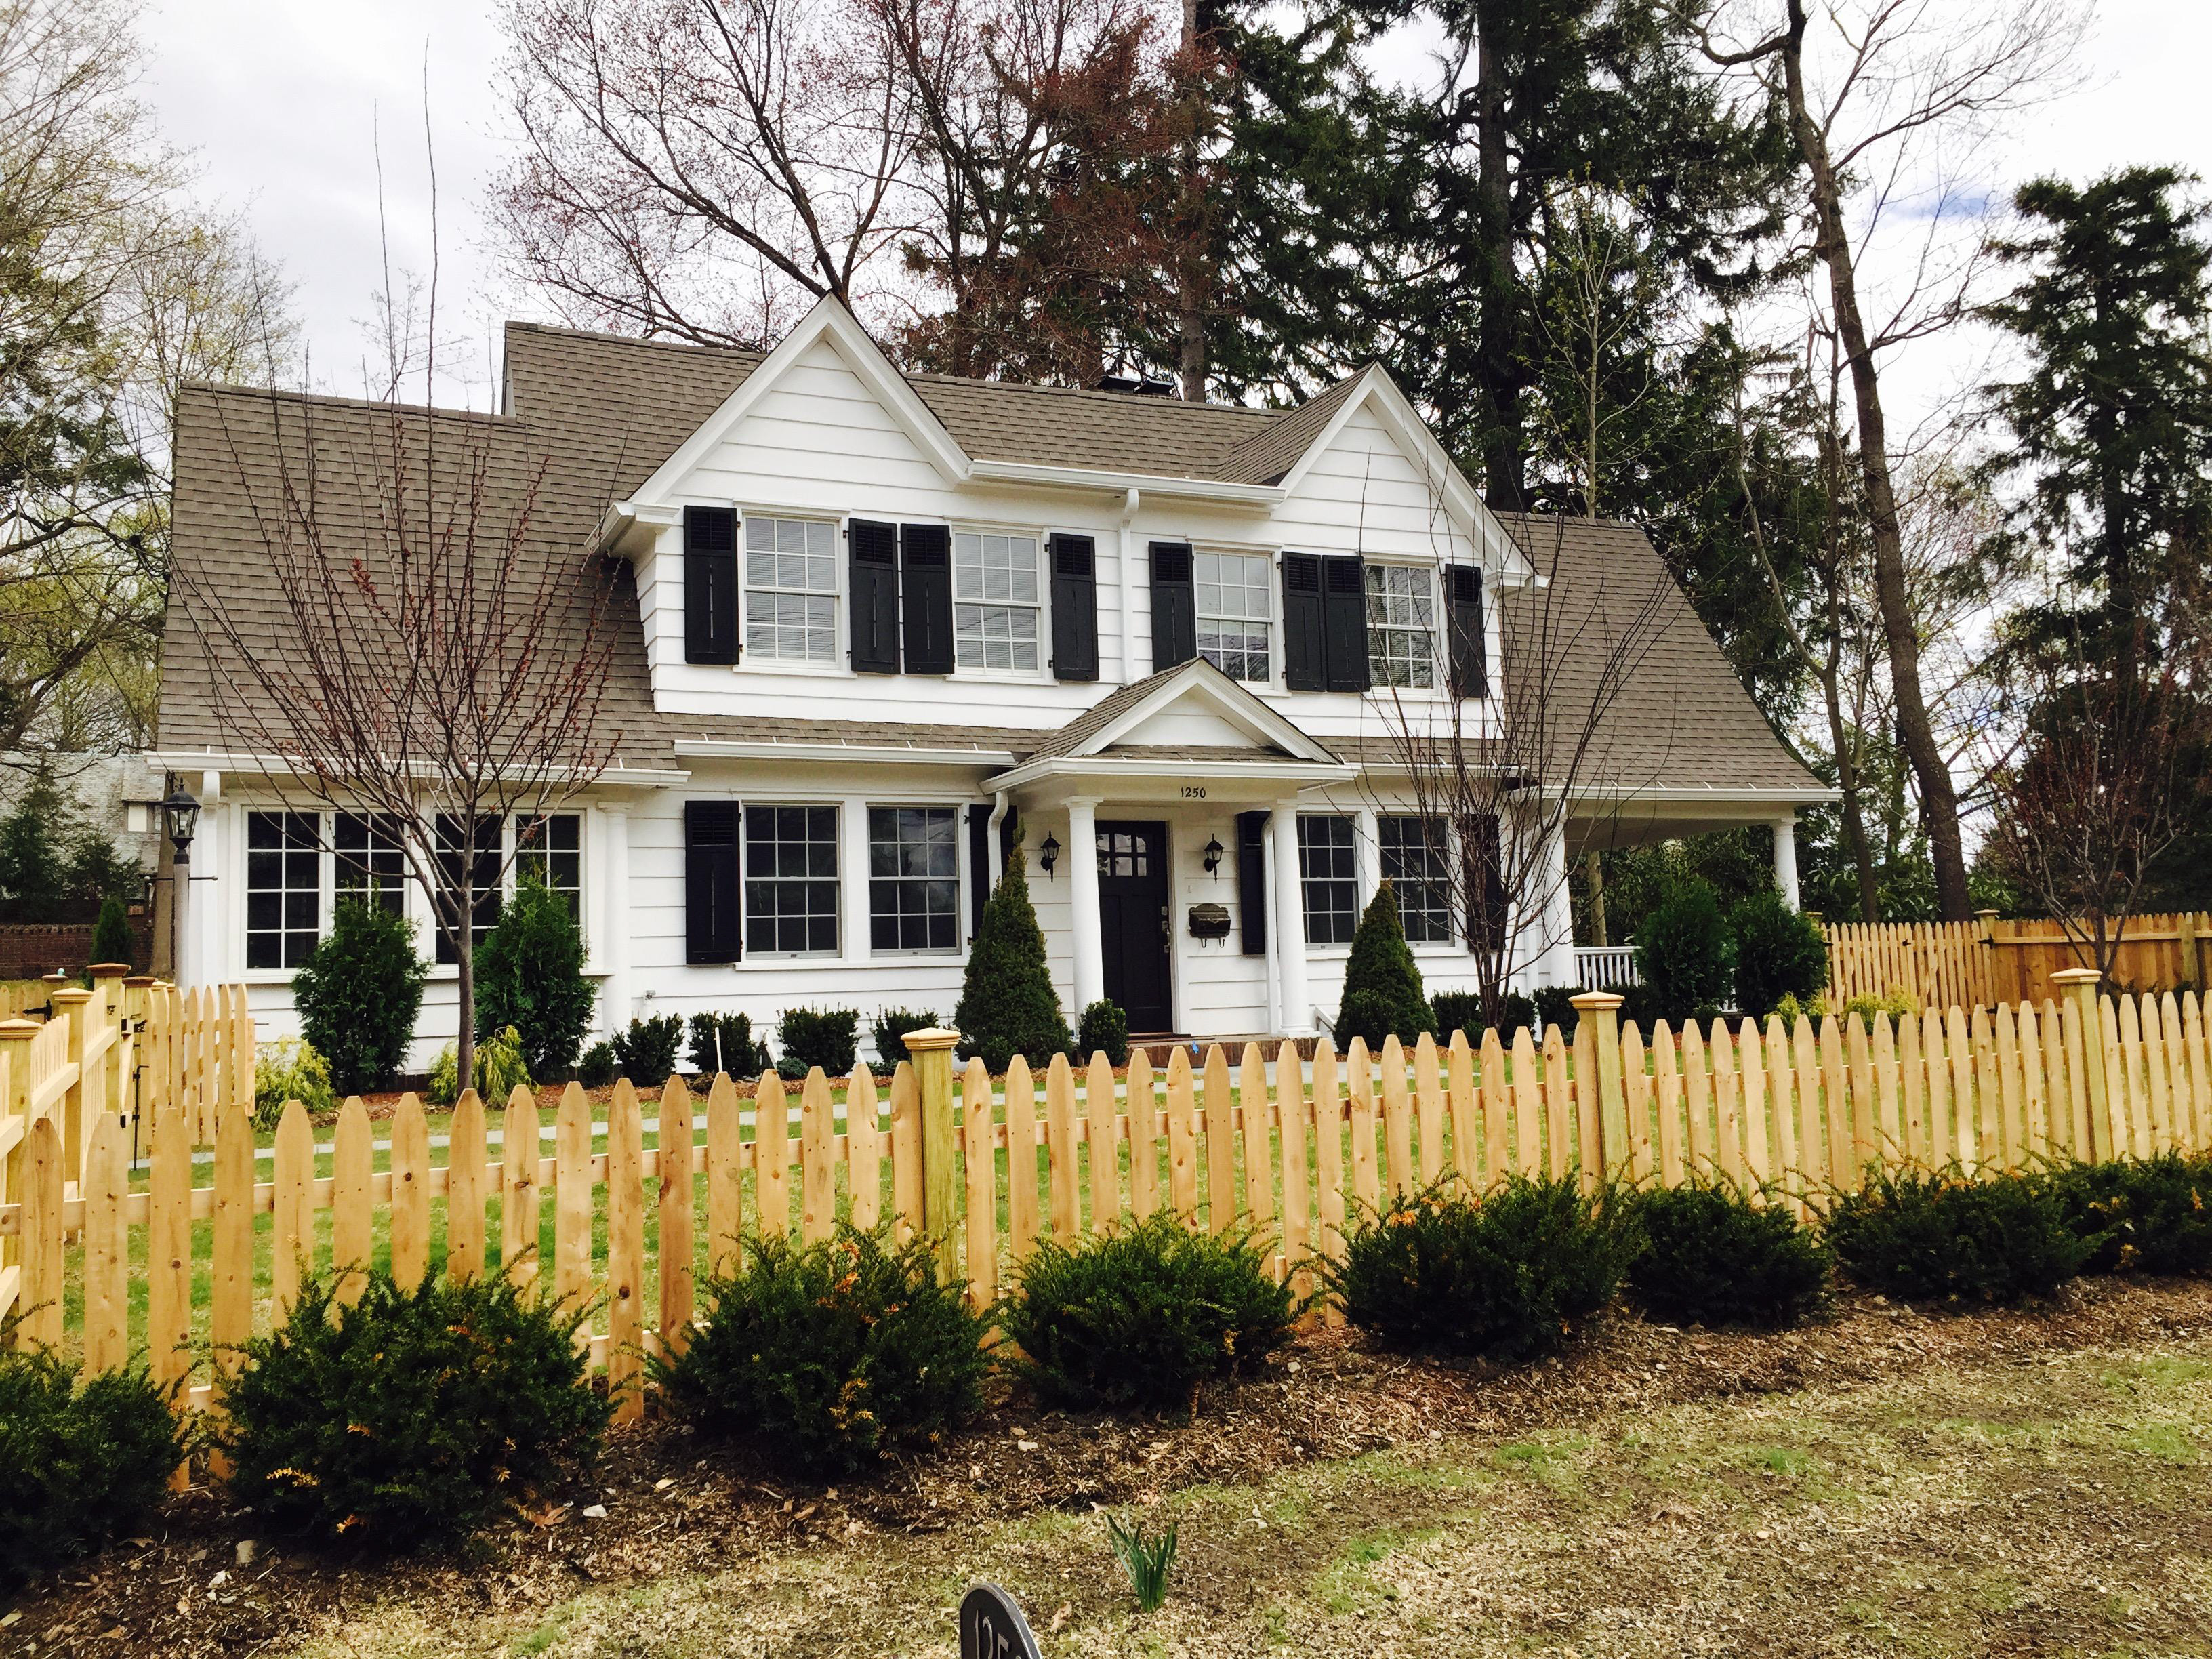 Property For Sale at Handsomely Renovated Center Hall Colonial